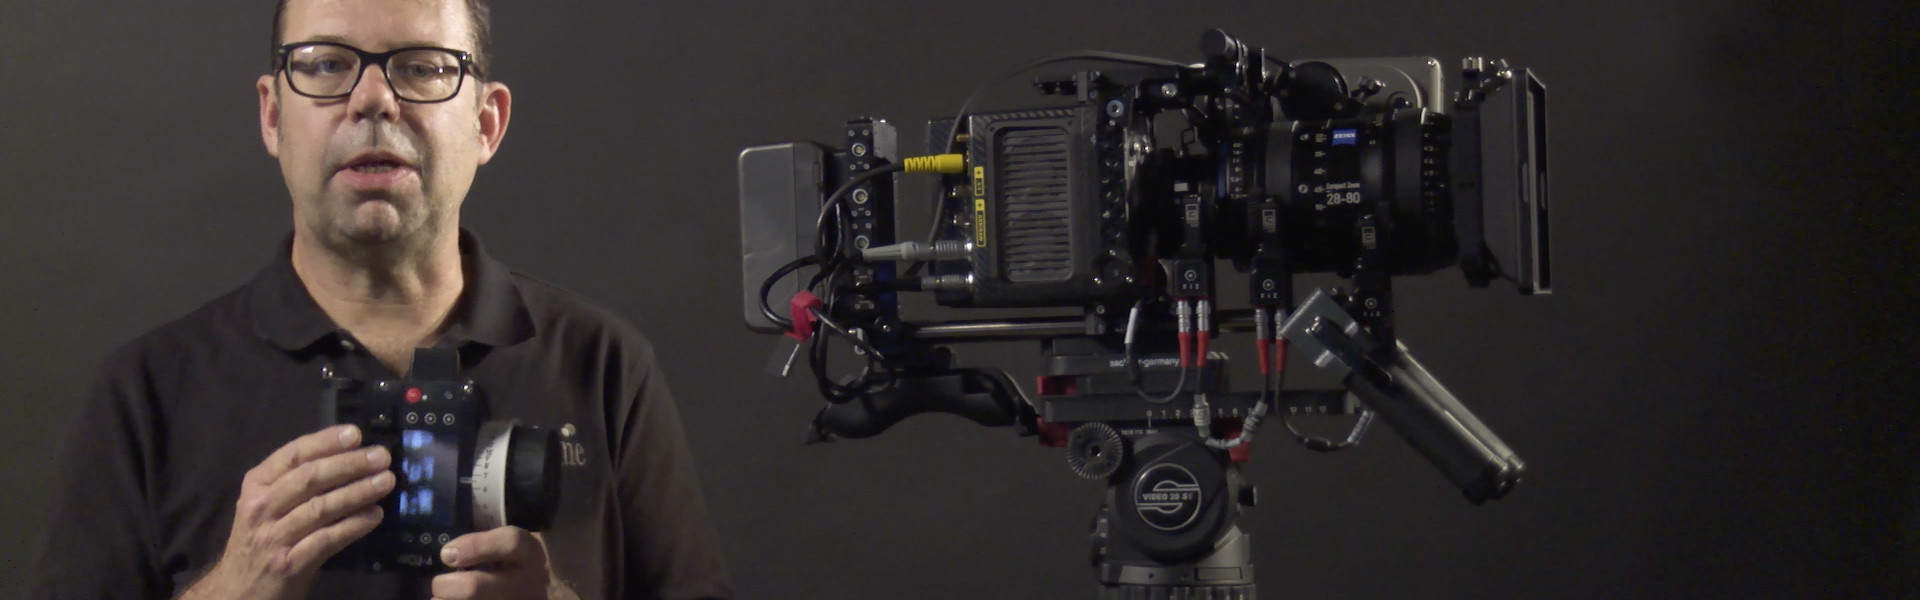 Header image for article At the Bench: Using the ARRI WCU-4 with ALEXA Mini